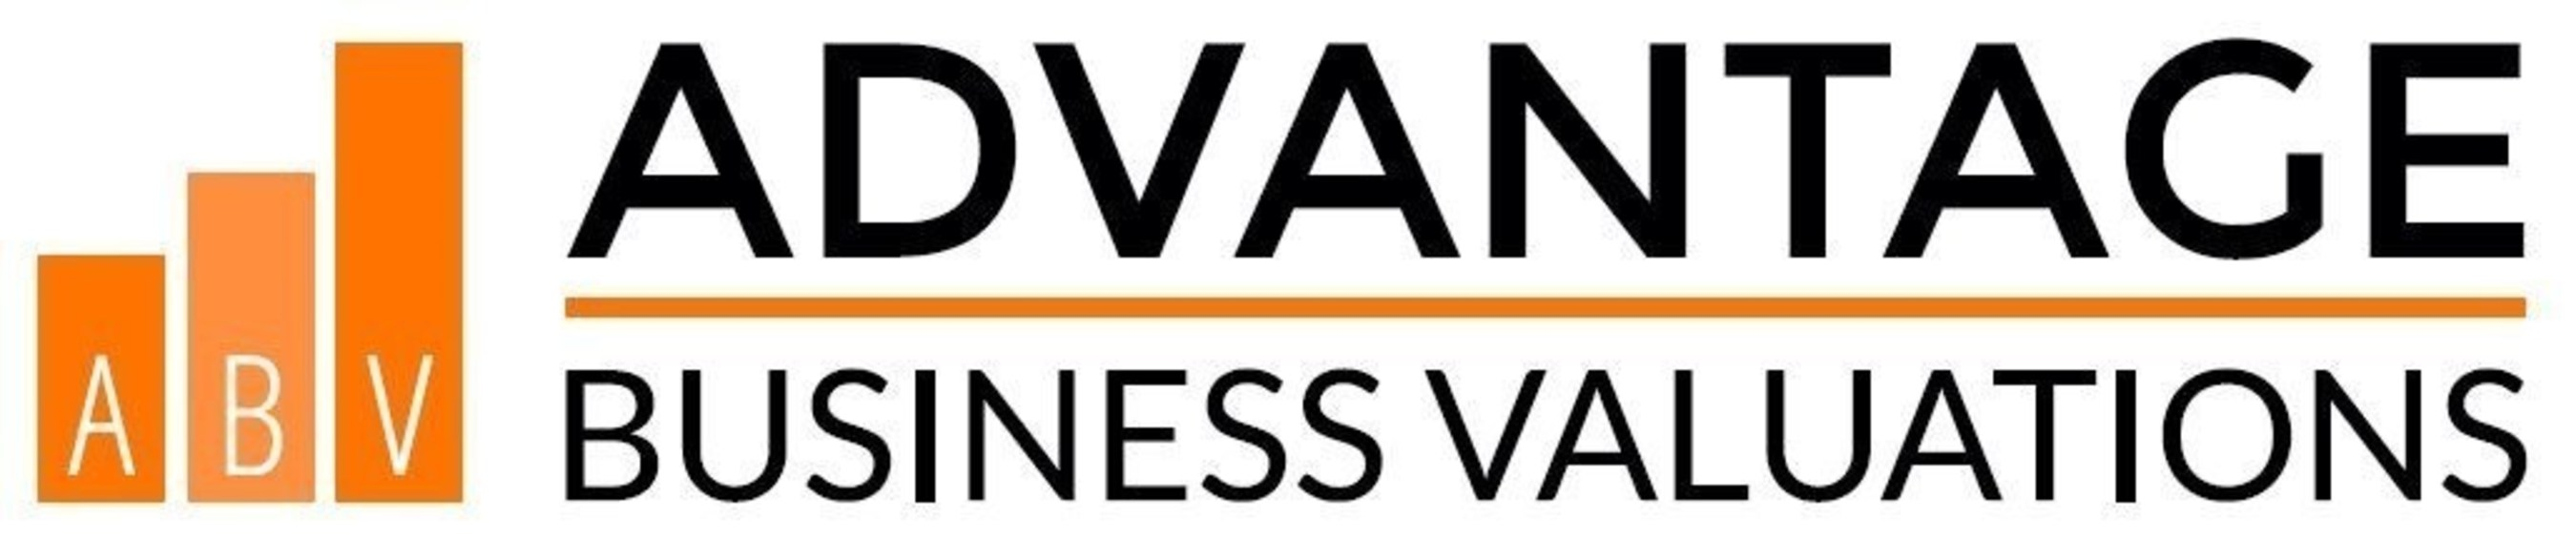 Advantage Business Valuations logo